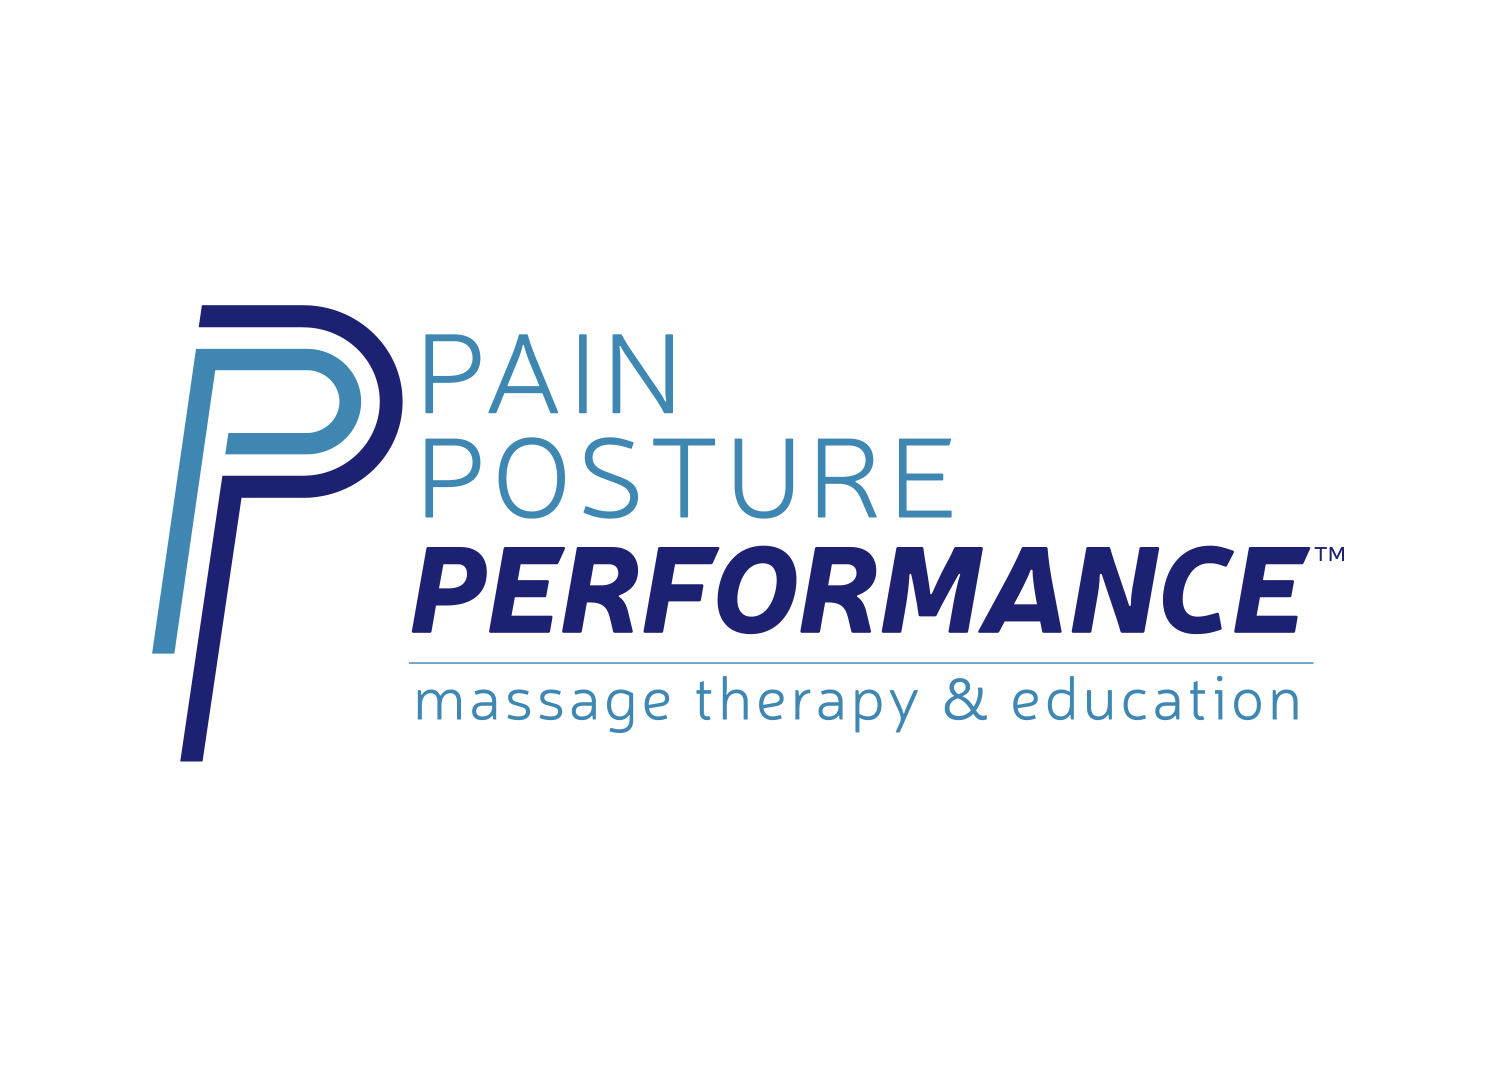 Pain Posture Performance